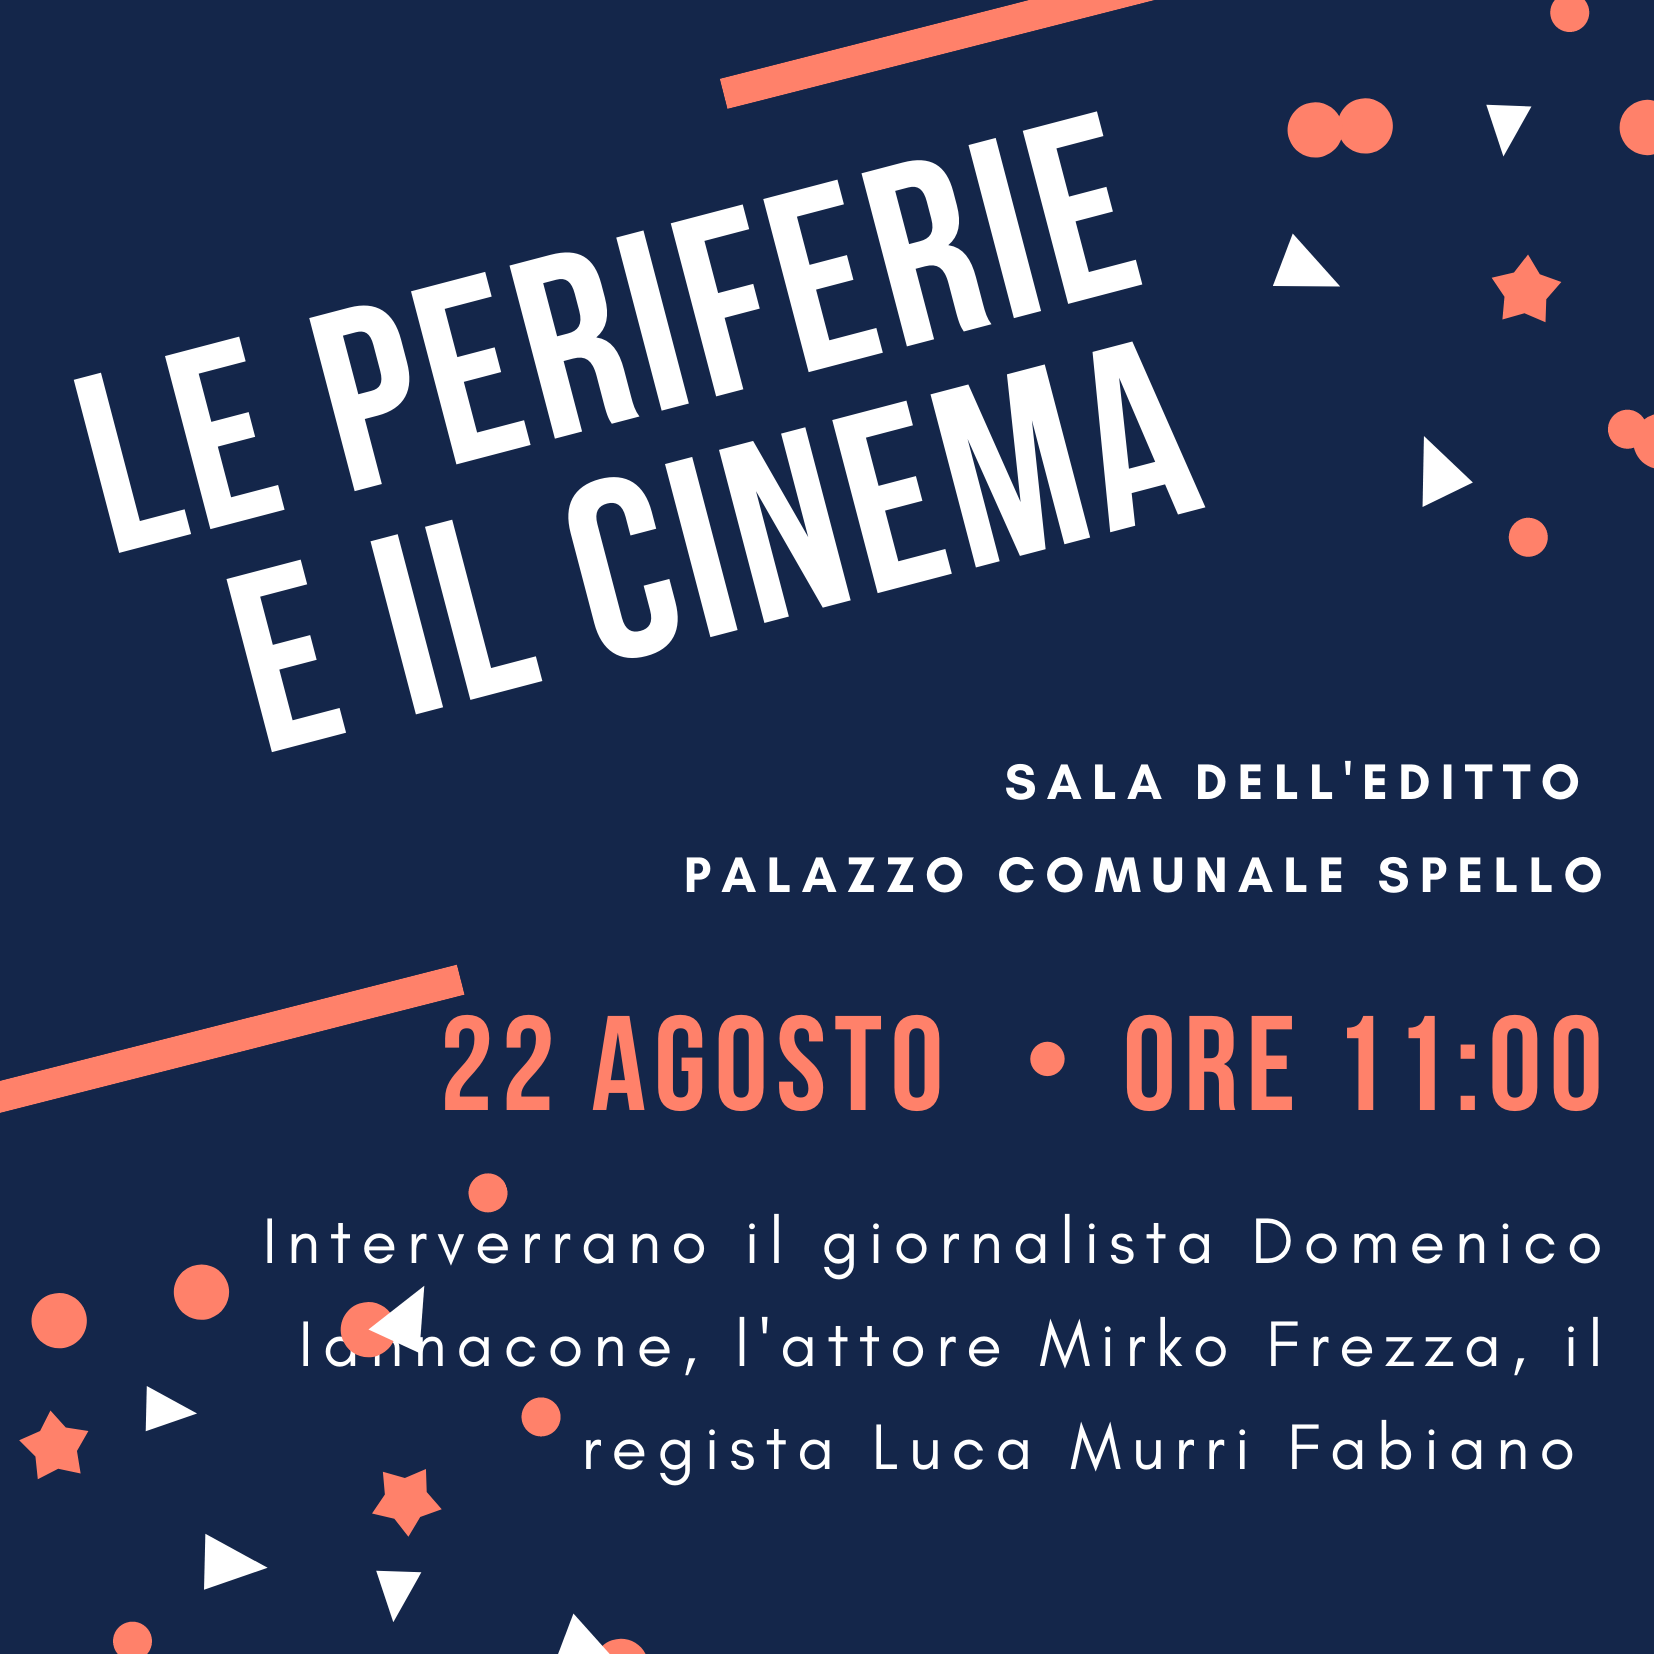 Le Periferie e il Cinema 1